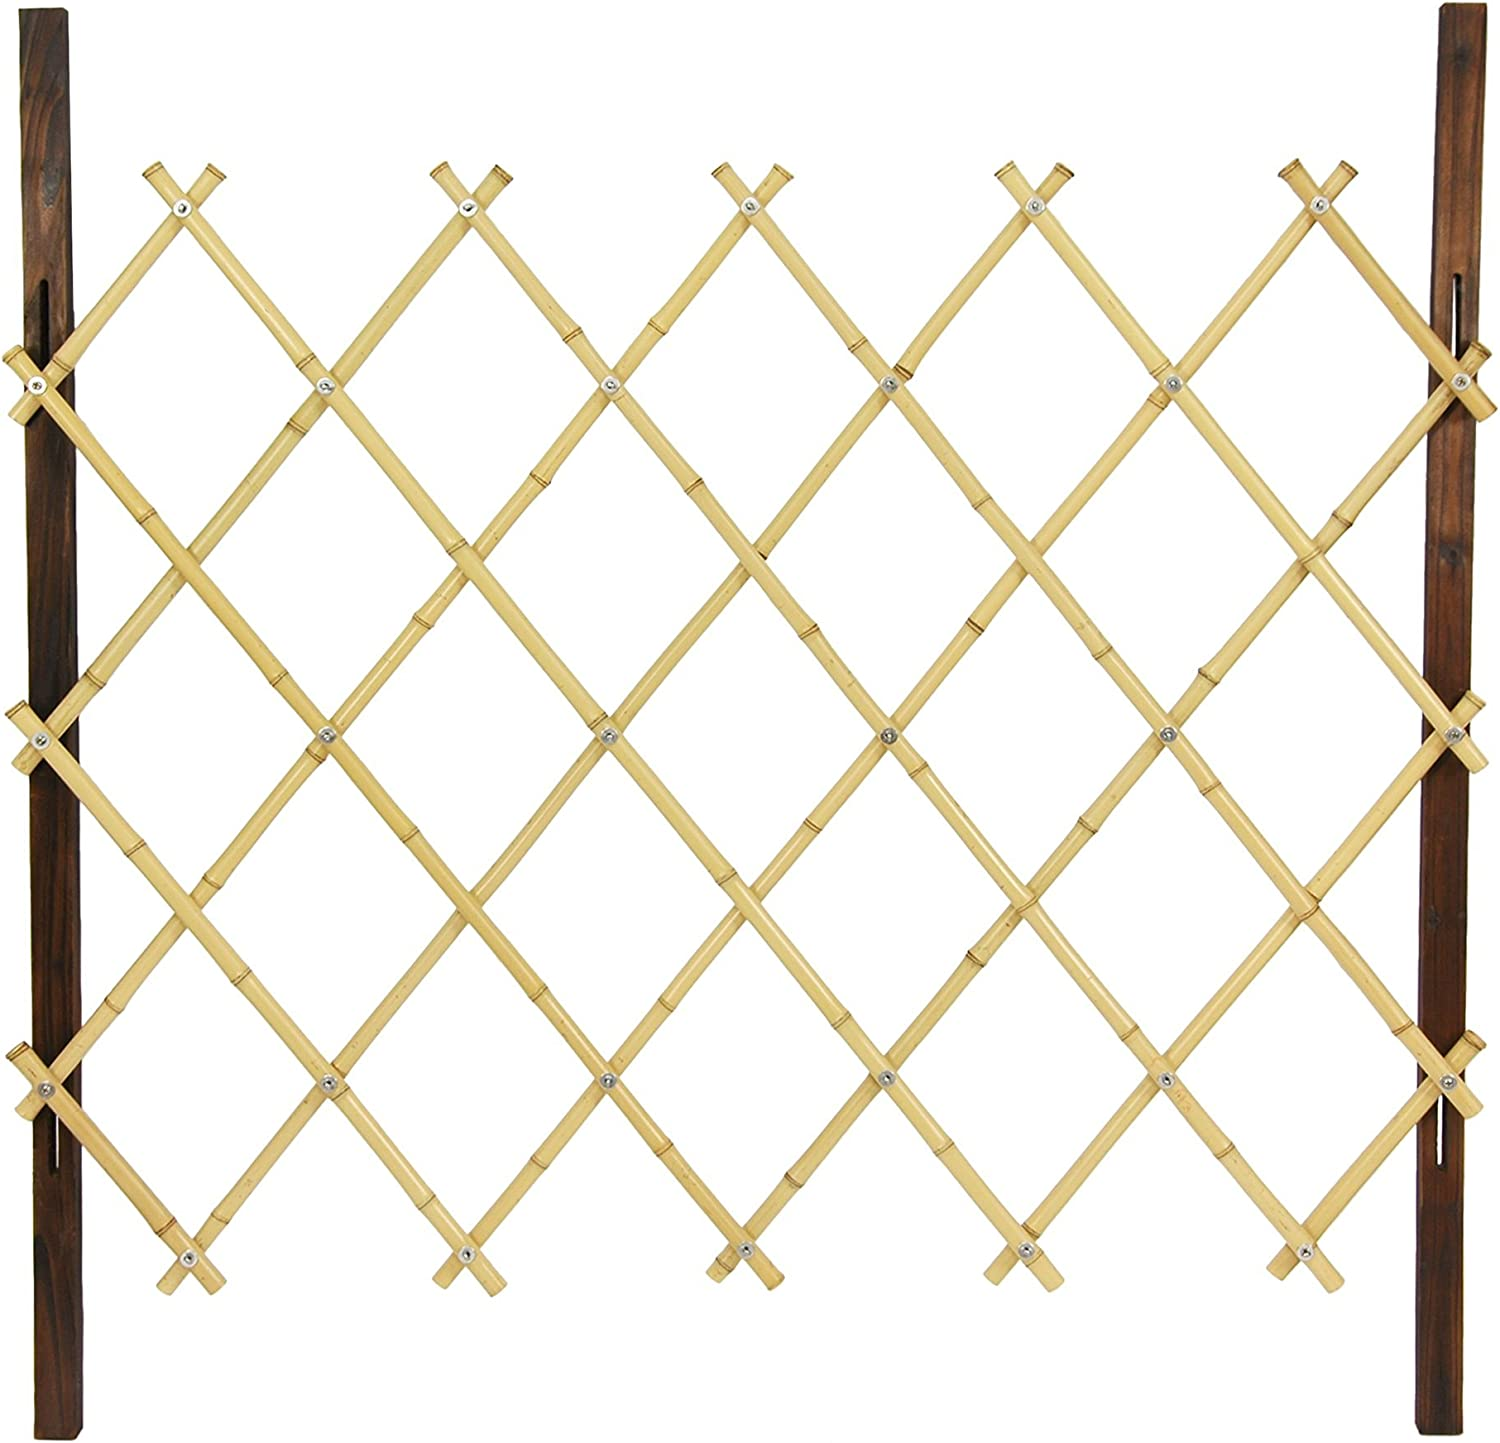 Oriental Furniture 3-Feet Tall Diamond Bamboo Fence, Natural